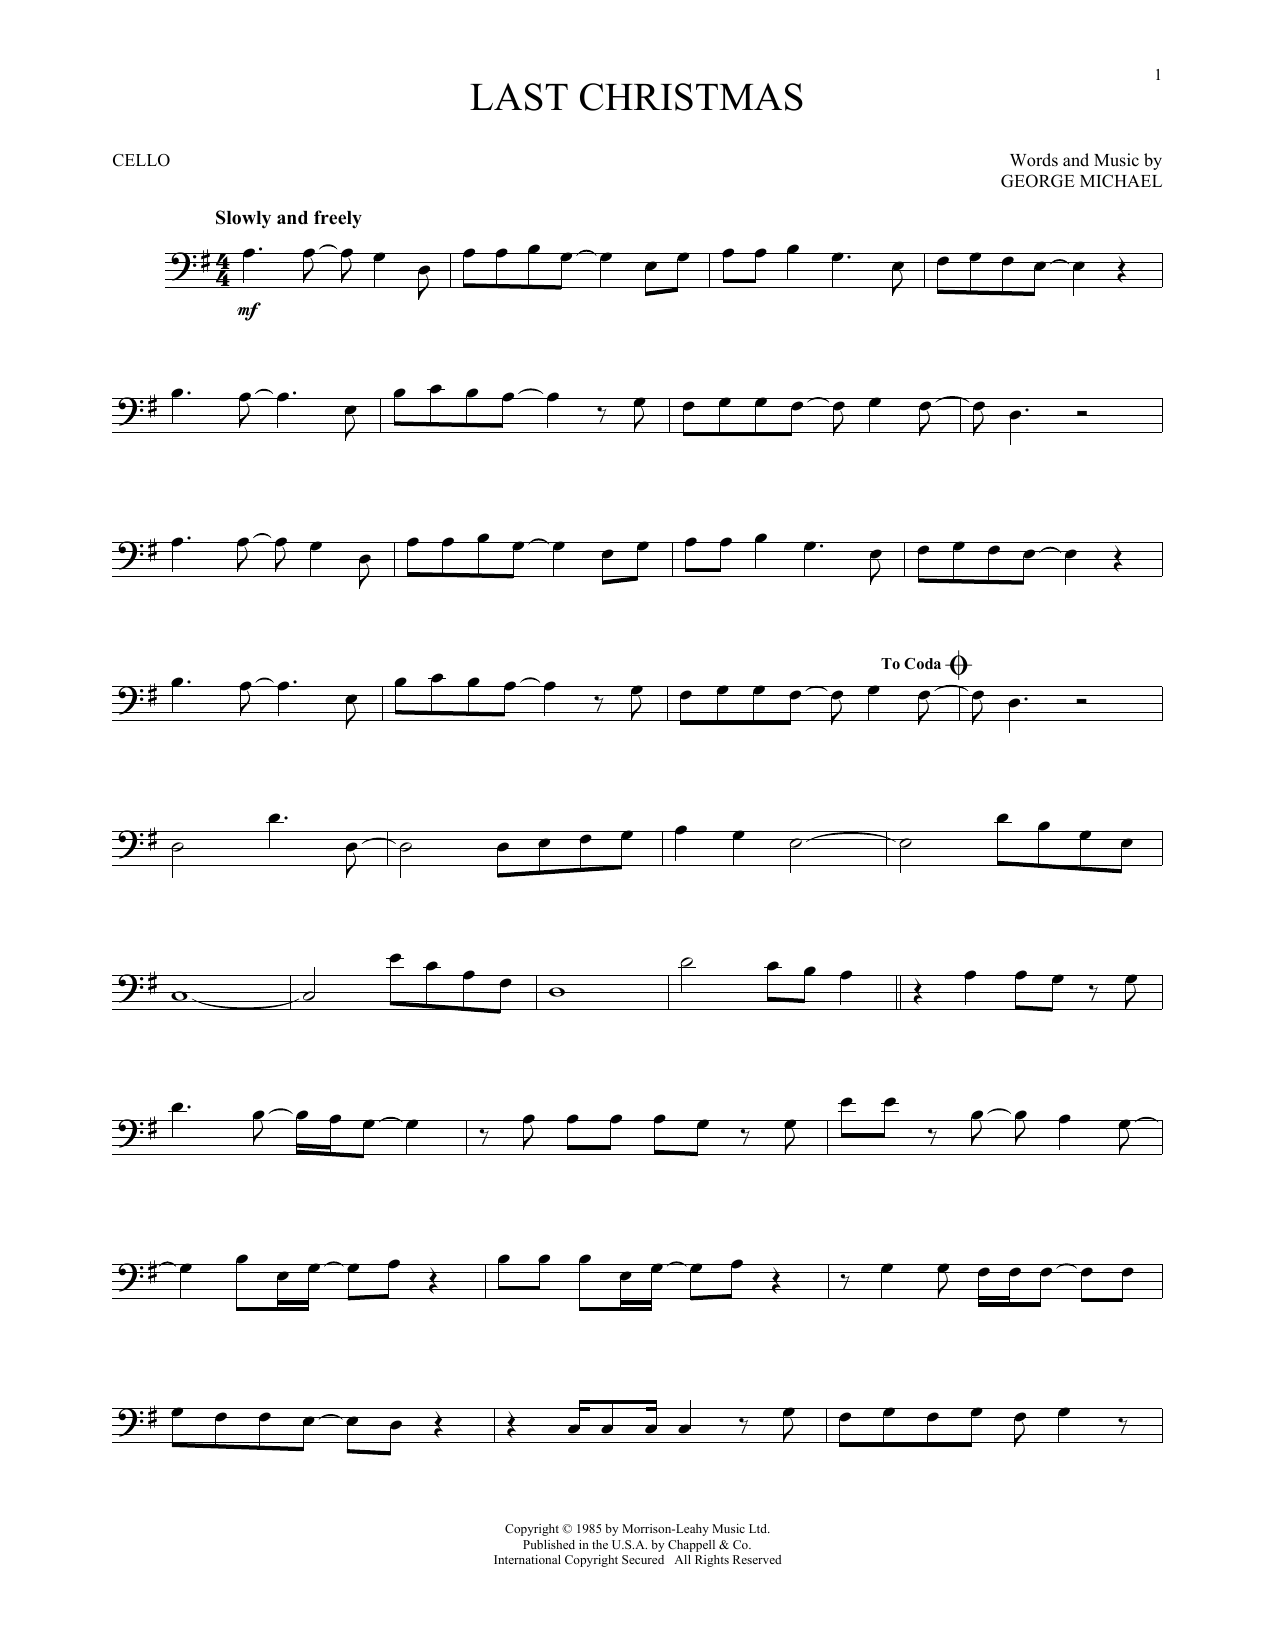 Wham! Last Christmas Sheet Music Notes